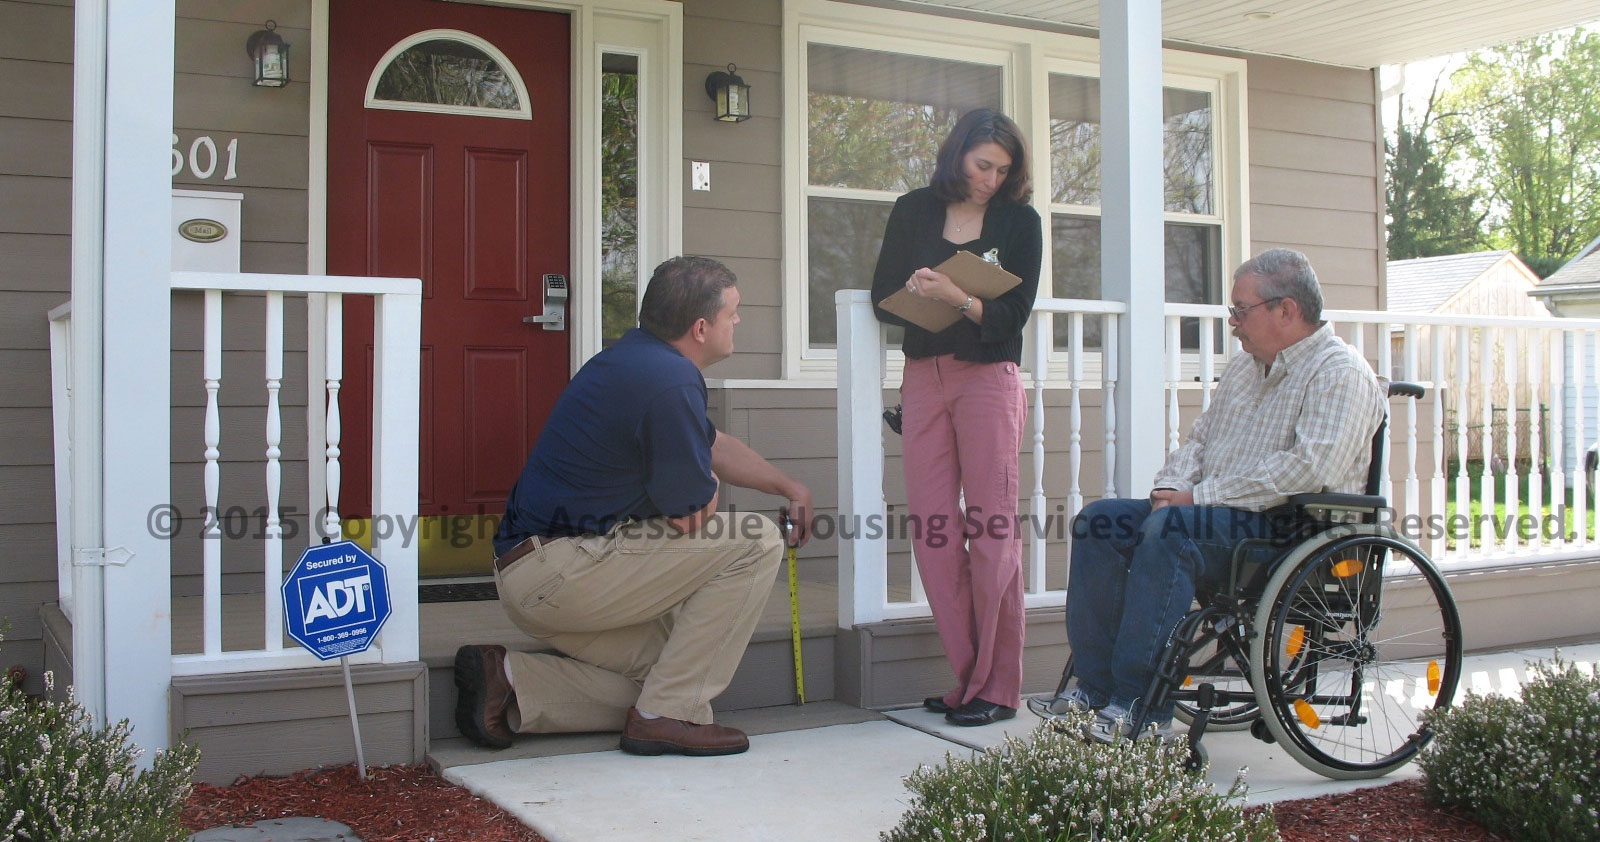 Measuring Wheelchair Accessible Home Entrance Accessible: wheelchair accessible housing